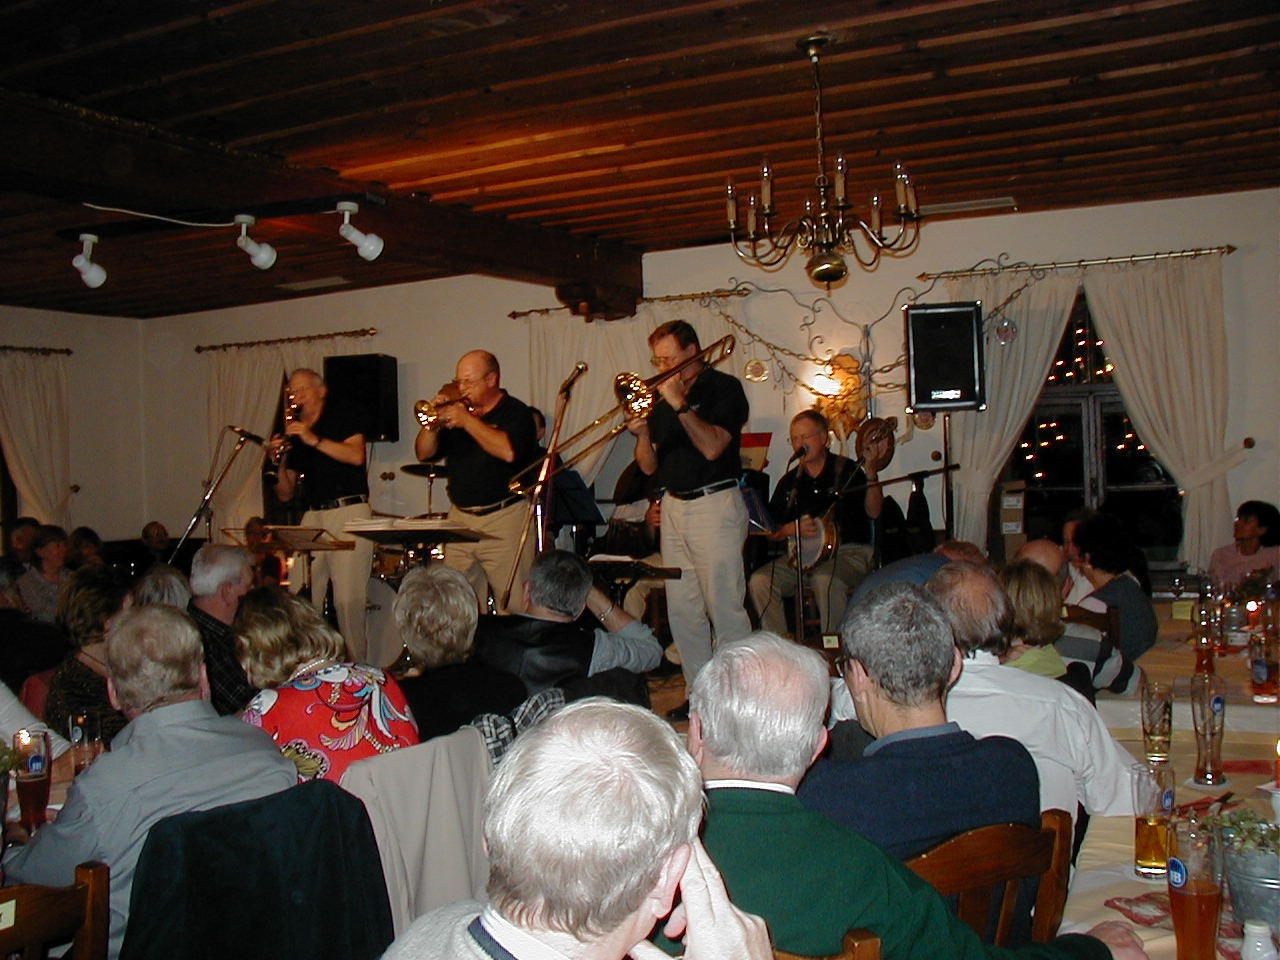 Canamger on stage at Gasthof Bock